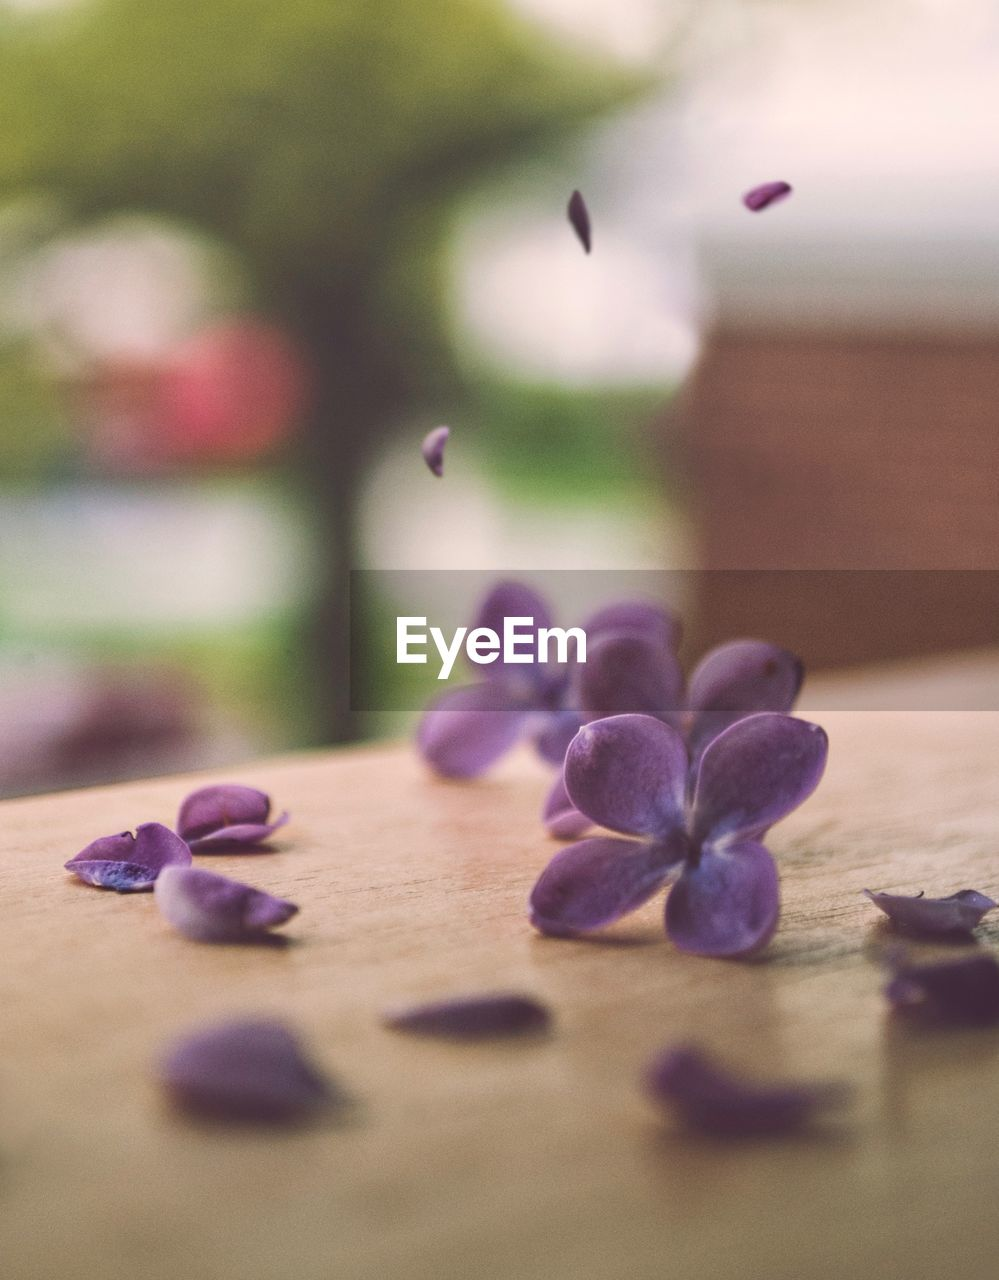 selective focus, close-up, freshness, flower, flowering plant, no people, table, indoors, purple, food, food and drink, petal, wood - material, day, beauty in nature, large group of objects, plant, blueberry, nature, still life, pebble